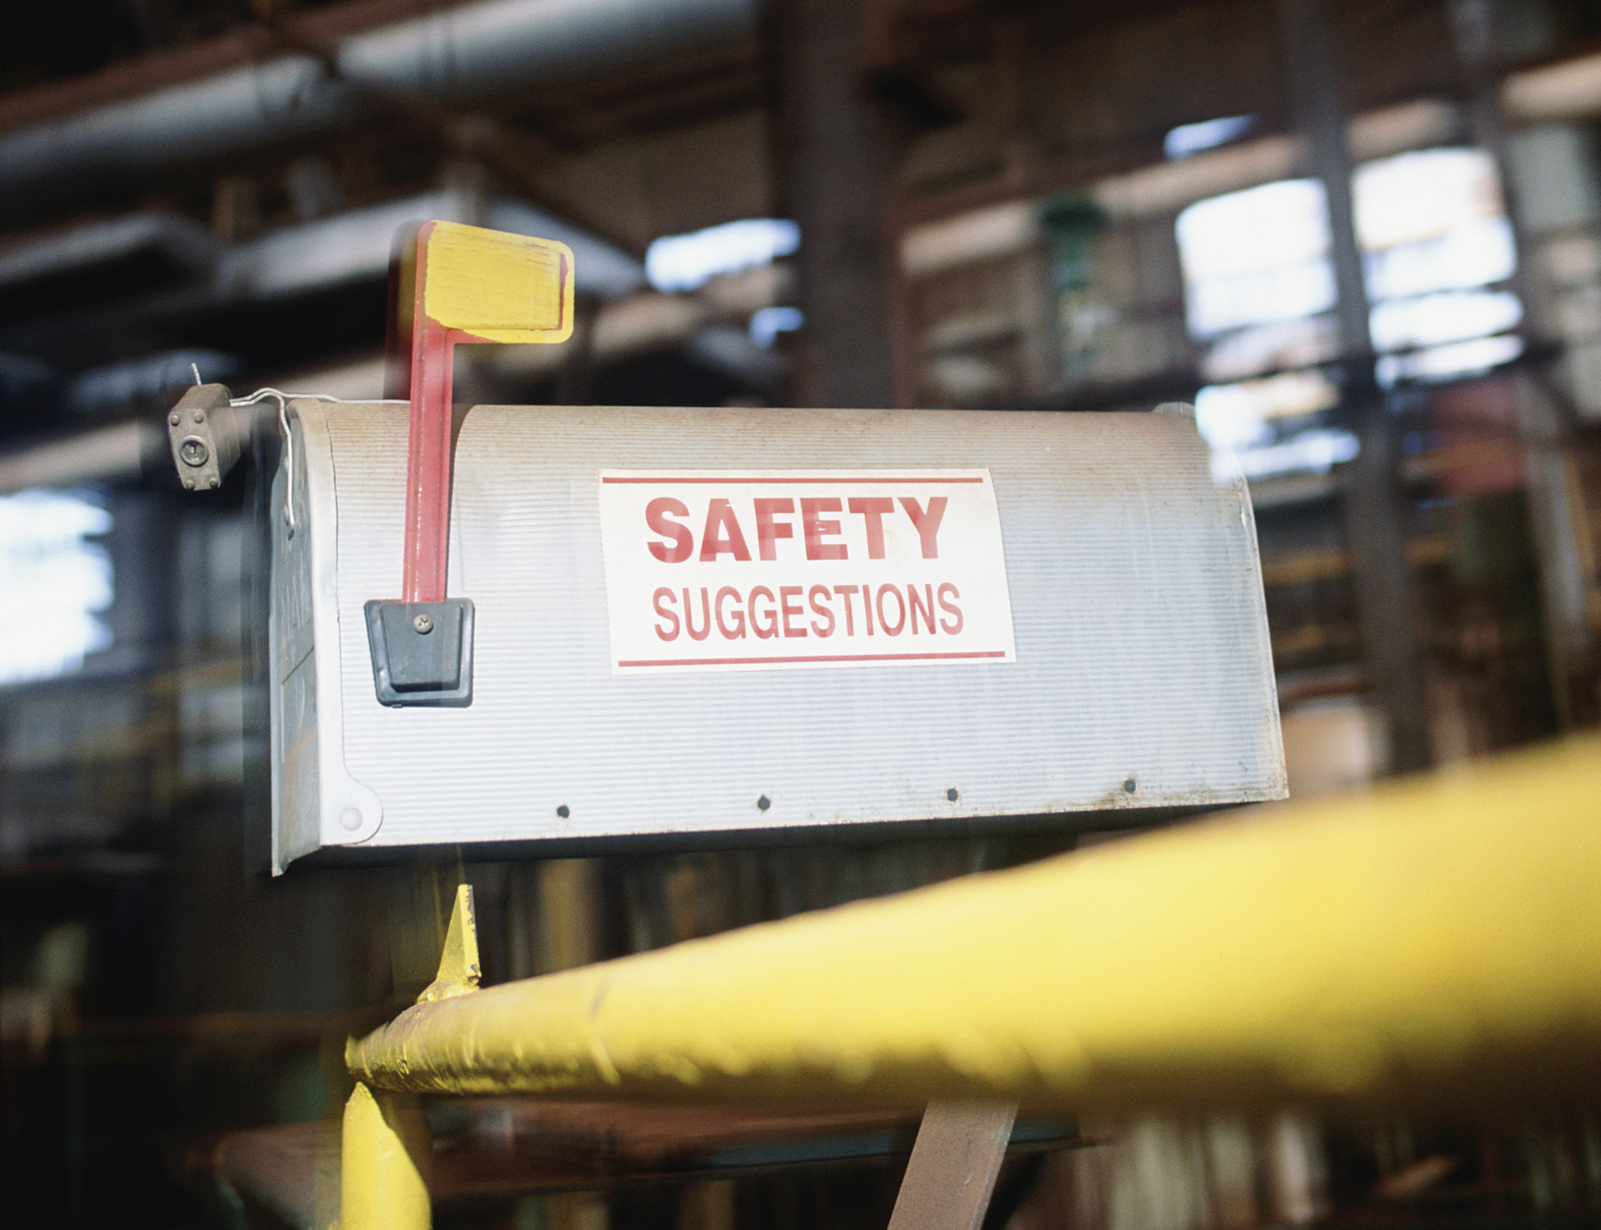 Automation Safety Often Overlooked, Say Robotics, AI Experts